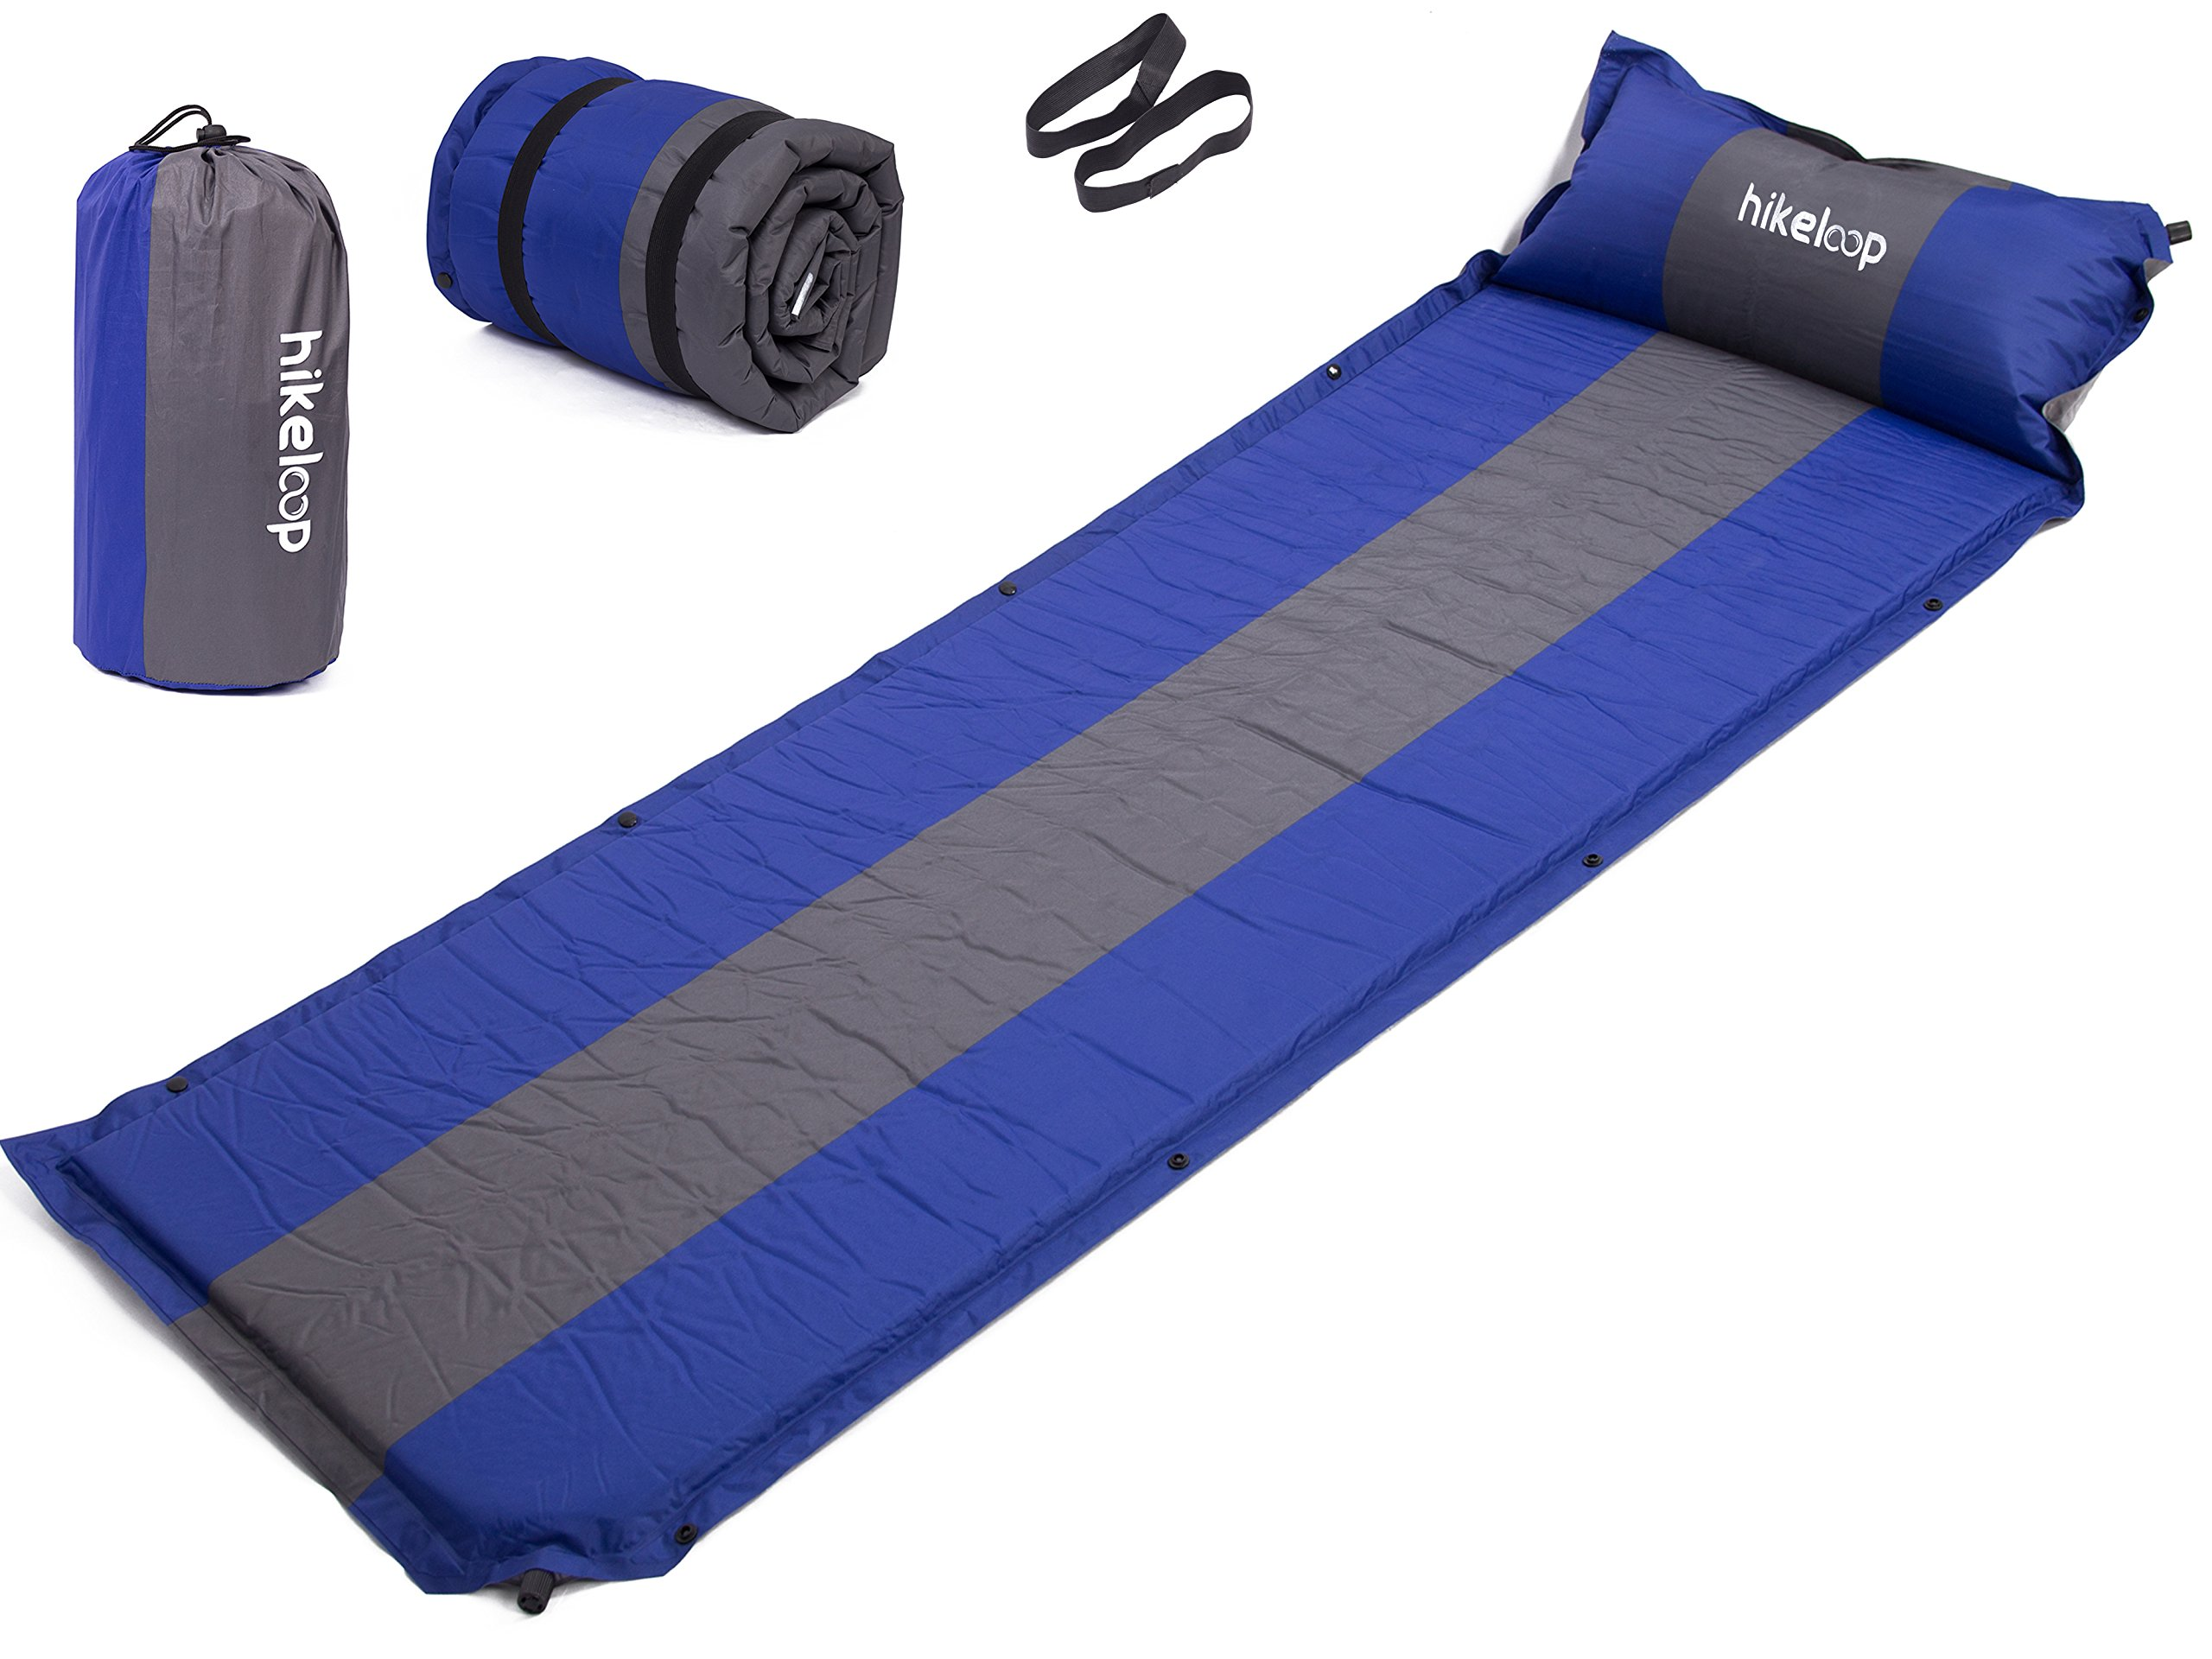 Inflatable Air Sleeping Pad with Built-in Pillow, Lightweight, Waterproof Fabric, Compact and Comfortable, Quick Flow Valve, Thick Outer Skin, Superior Sleeping Pad, for Camping, Hiking, Backpacking